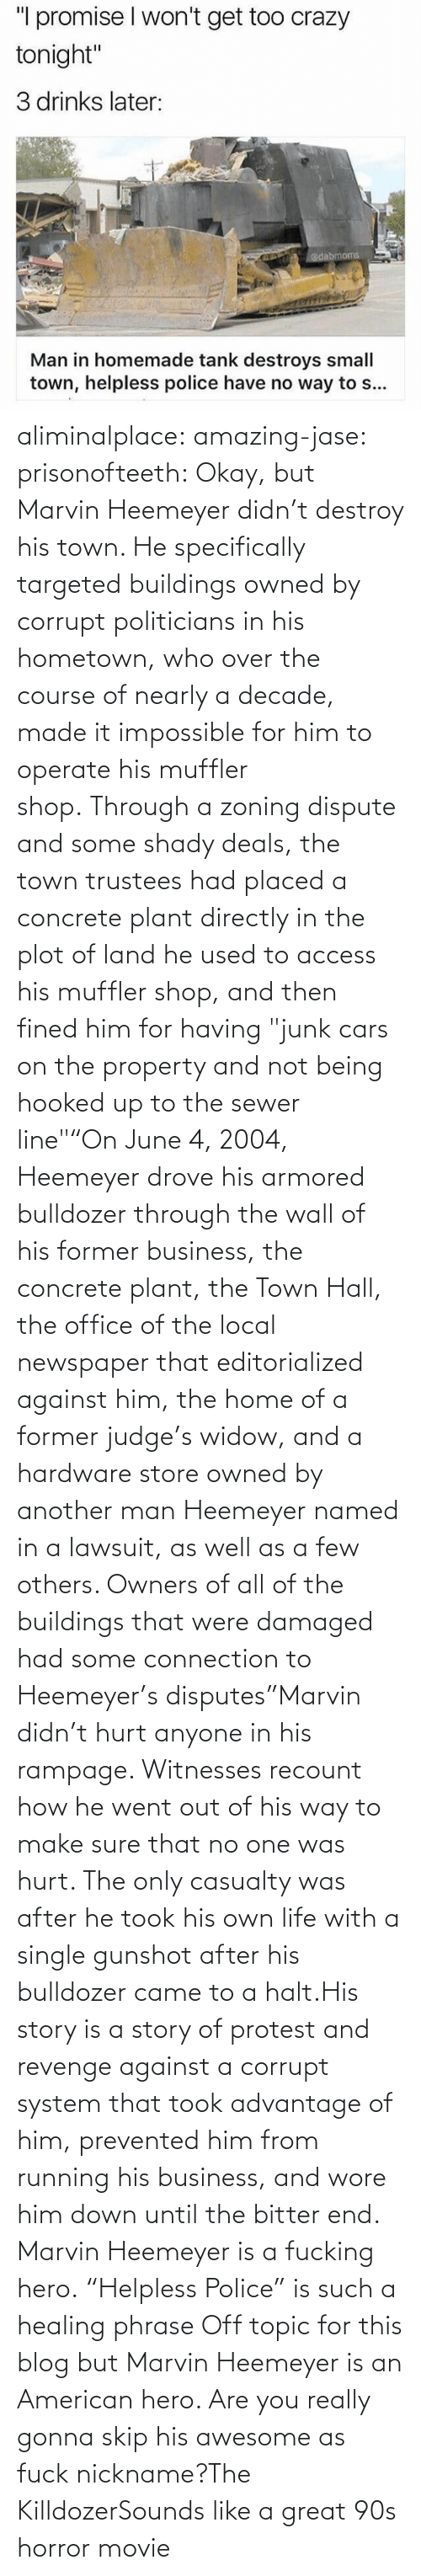 "nickname: aliminalplace: amazing-jase:  prisonofteeth: Okay, but Marvin Heemeyer didn't destroy his town. He specifically targeted buildings owned by corrupt politicians in his hometown, who over the course of nearly a decade, made it impossible for him to operate his muffler shop. Through a zoning dispute and some shady deals, the town trustees had placed a concrete plant directly in the plot of land he used to access his muffler shop, and then fined him for having ""junk cars on the property and not being hooked up to the sewer line""""On June 4, 2004, Heemeyer drove his armored bulldozer through the wall of his former business, the concrete plant, the Town Hall, the office of the local newspaper that editorialized against him, the home of a former judge's widow, and a hardware store owned by another man Heemeyer named in a lawsuit, as well as a few others. Owners of all of the buildings that were damaged had some connection to Heemeyer's disputes""Marvin didn't hurt anyone in his rampage. Witnesses recount how he went out of his way to make sure that no one was hurt. The only casualty was after he took his own life with a single gunshot after his bulldozer came to a halt.His story is a story of protest and revenge against a corrupt system that took advantage of him, prevented him from running his business, and wore him down until the bitter end. Marvin Heemeyer is a fucking hero. ""Helpless Police"" is such a healing phrase    Off topic for this blog but Marvin Heemeyer is an American hero.     Are you really gonna skip his awesome as fuck nickname?The KilldozerSounds like a great 90s horror movie"